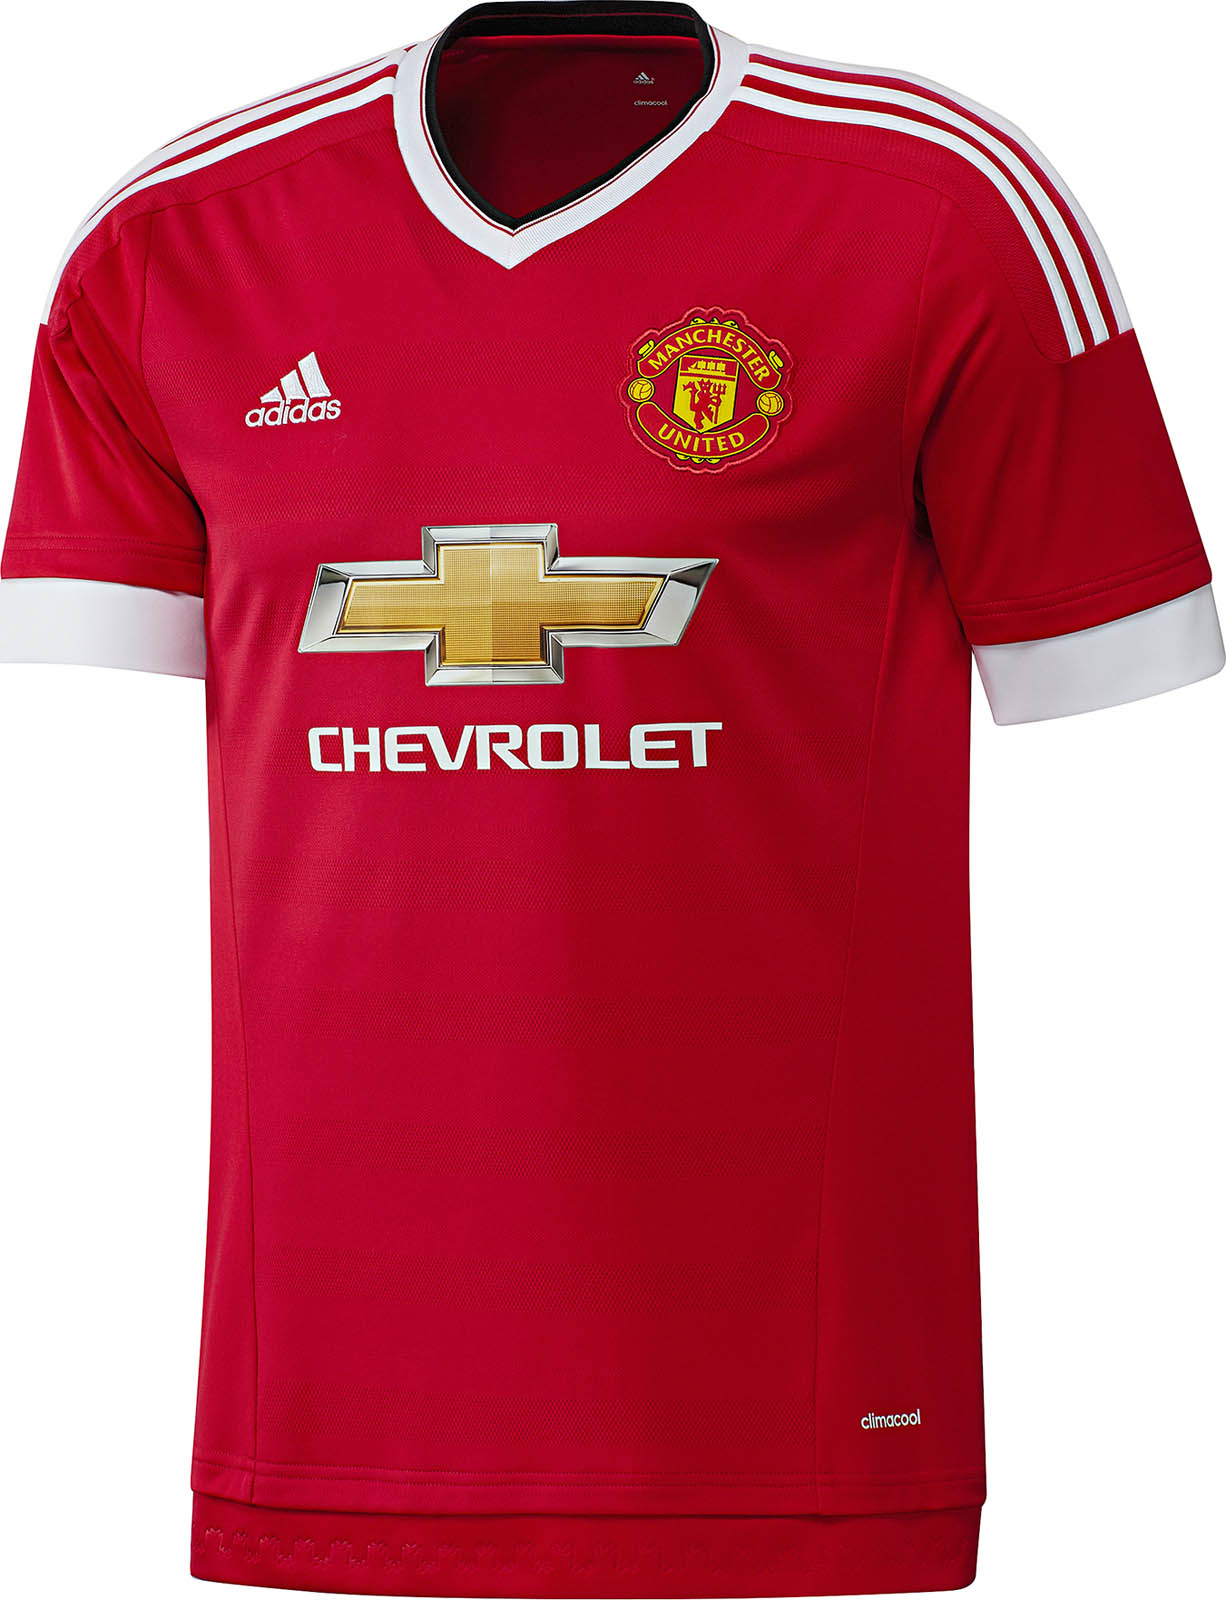 Manchester-United-Football-Shirt